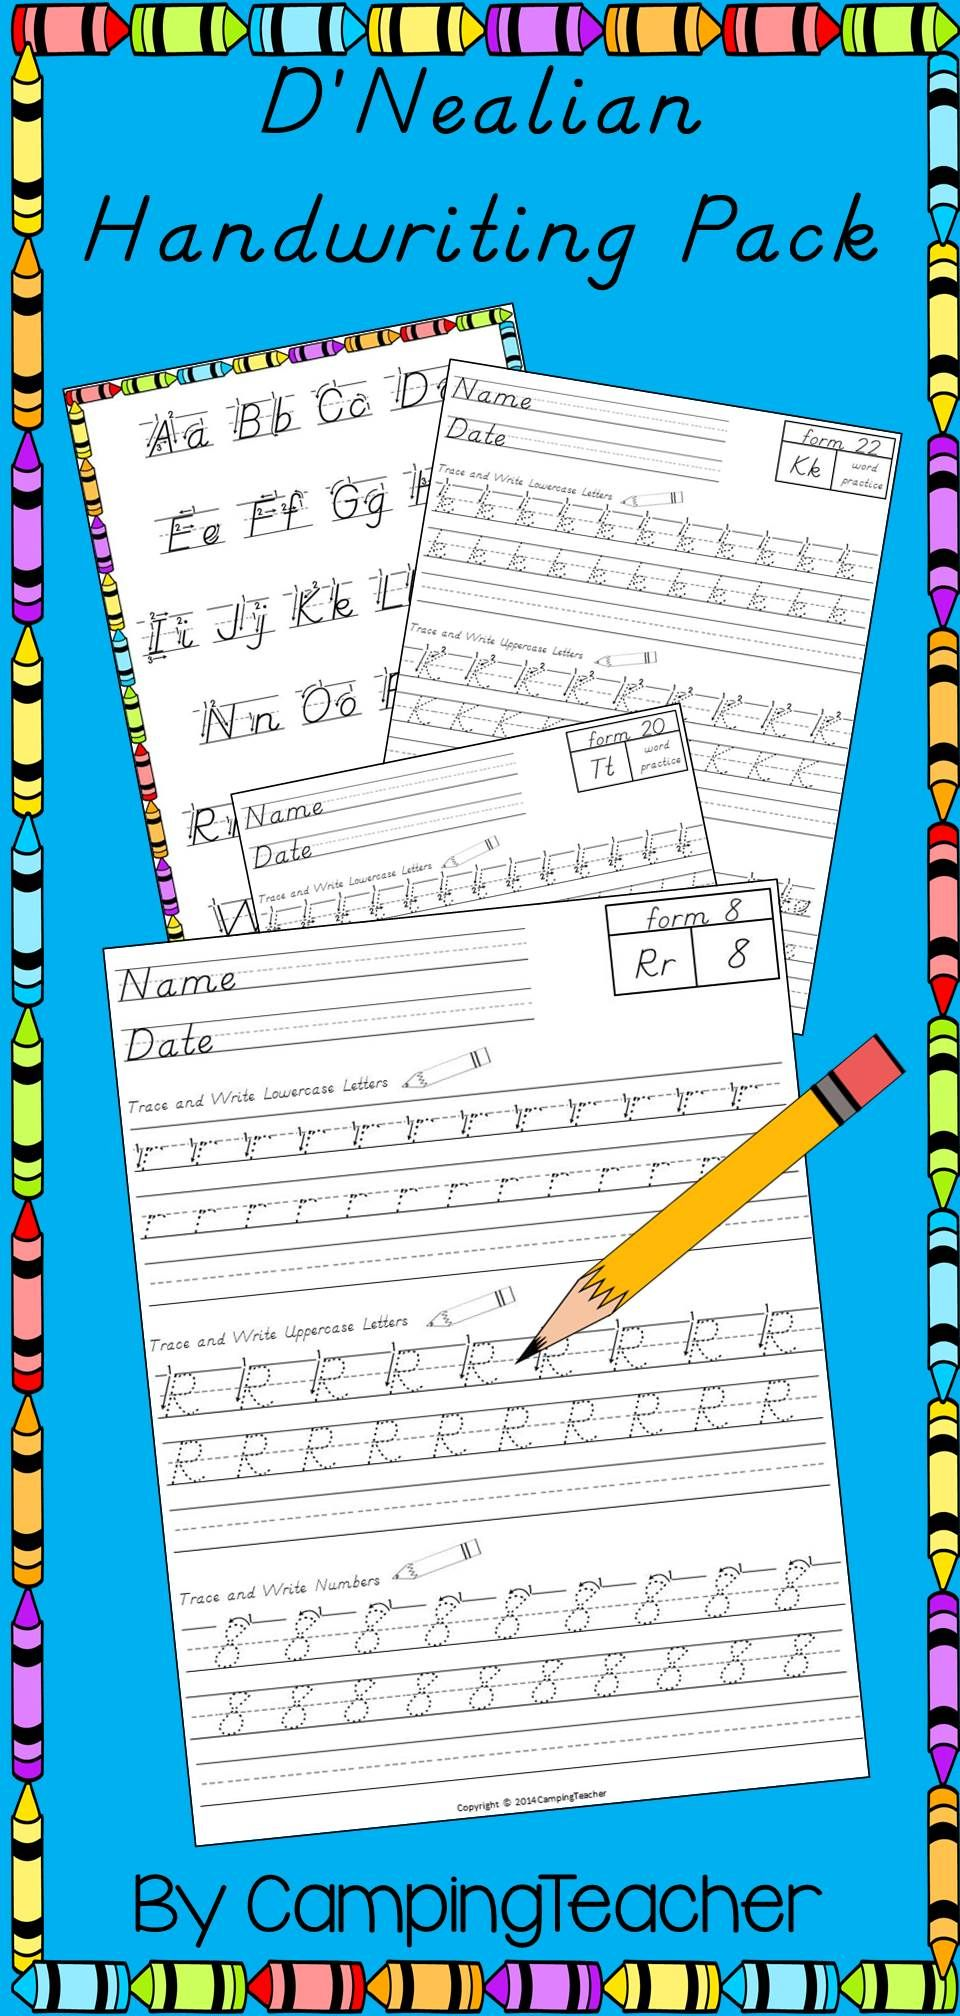 Worksheets D Nealian Handwriting Worksheets dnealian writing pack handwriting practice first year teacher worksheets and posters for teaching handwriting